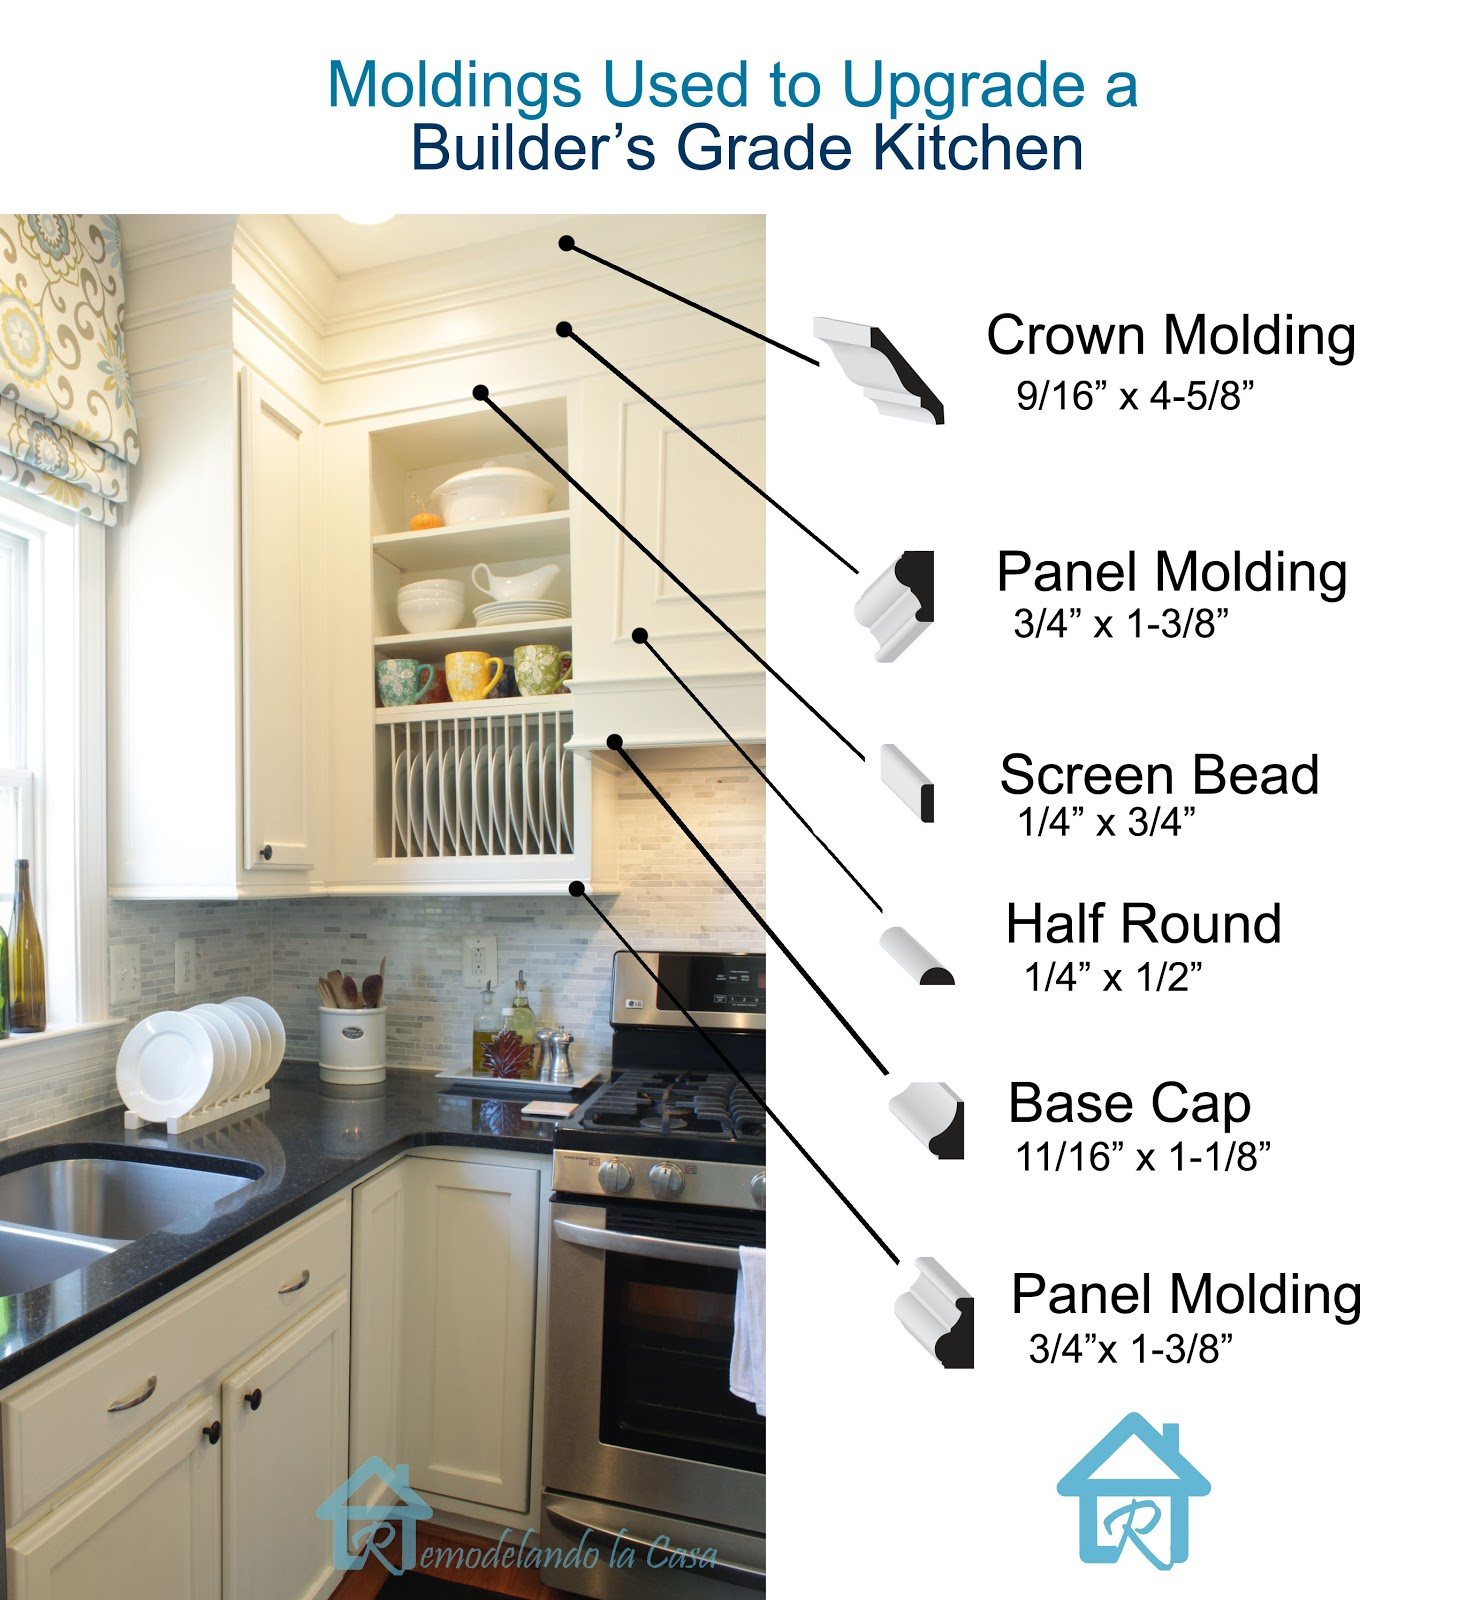 Adding moldings to your kitchen cabinets remodelando la casa for Attaching crown molding to kitchen cabinets